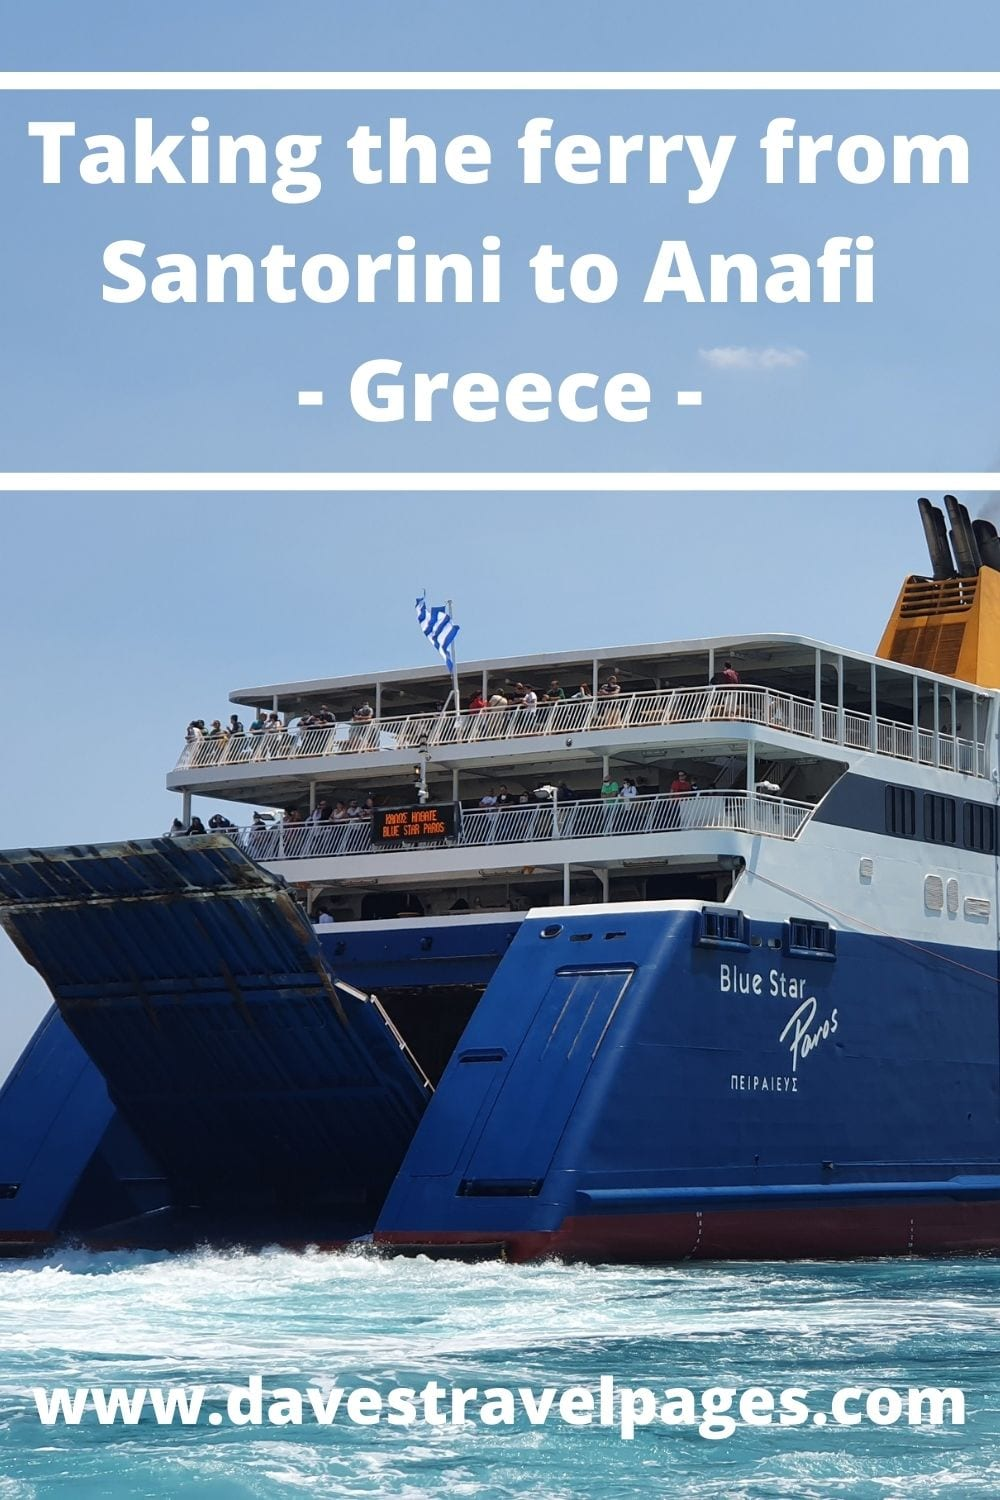 How to get the ferry from Santorini to Anafi in Greece